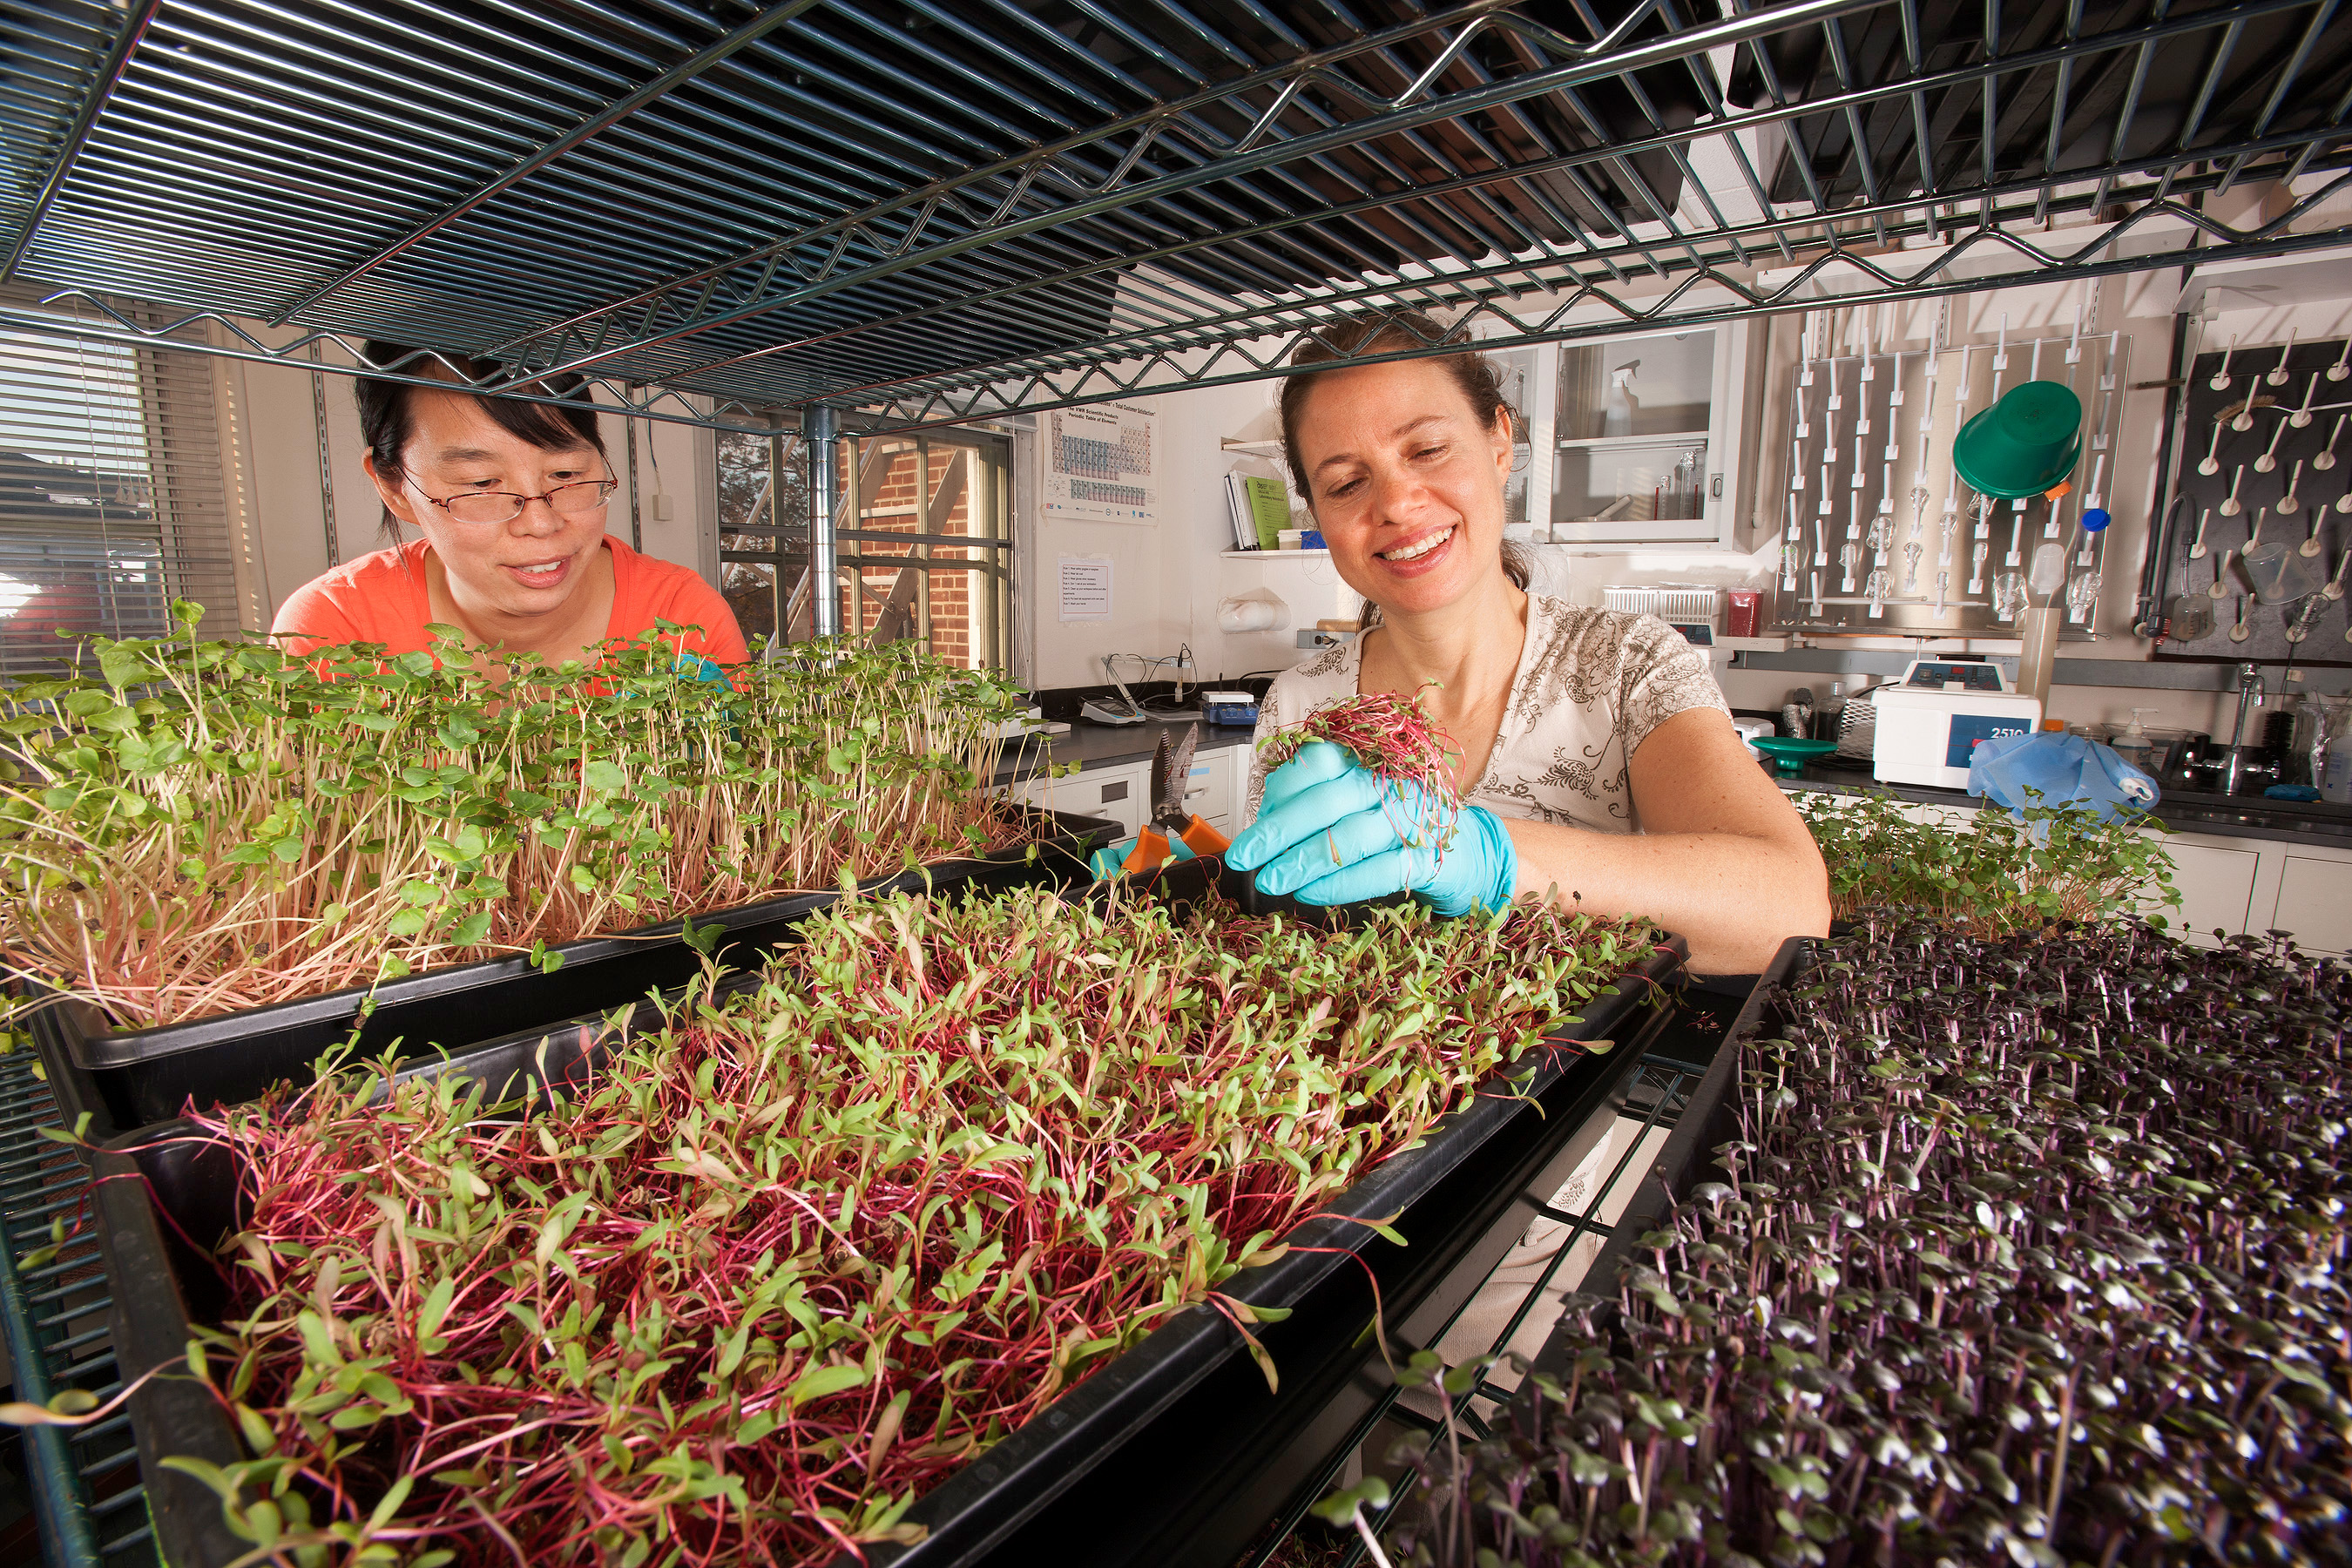 Microgreens. This is what